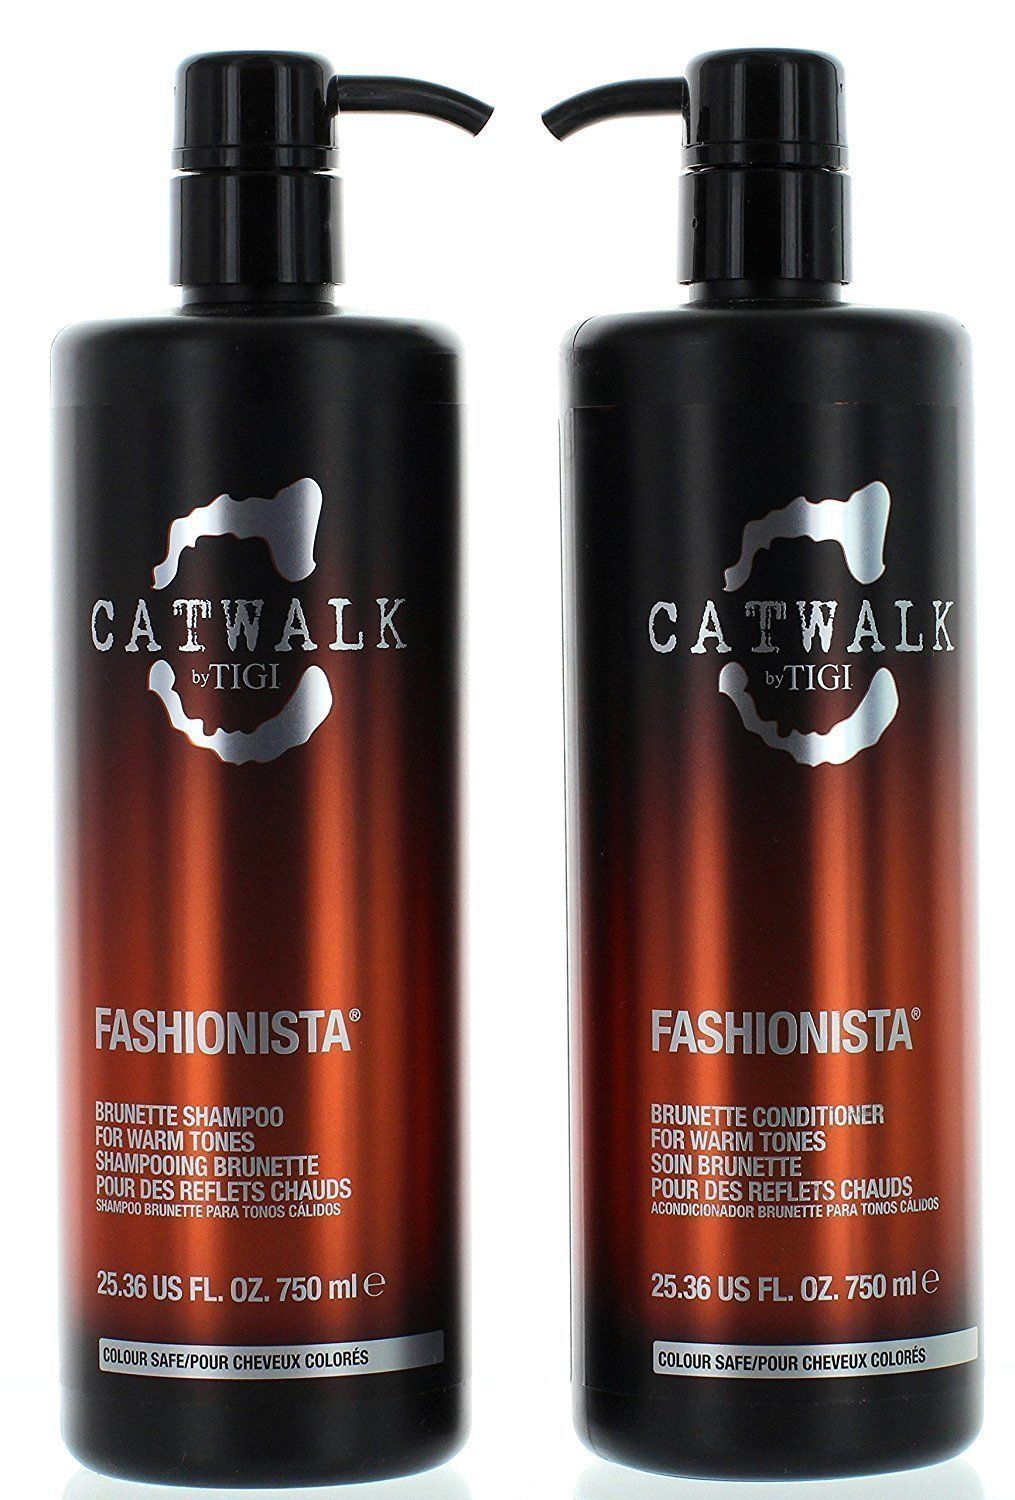 Catwalk Fashionista Brunette Tween Hair Shampoo And Conditioner, 25.36 Oz/each